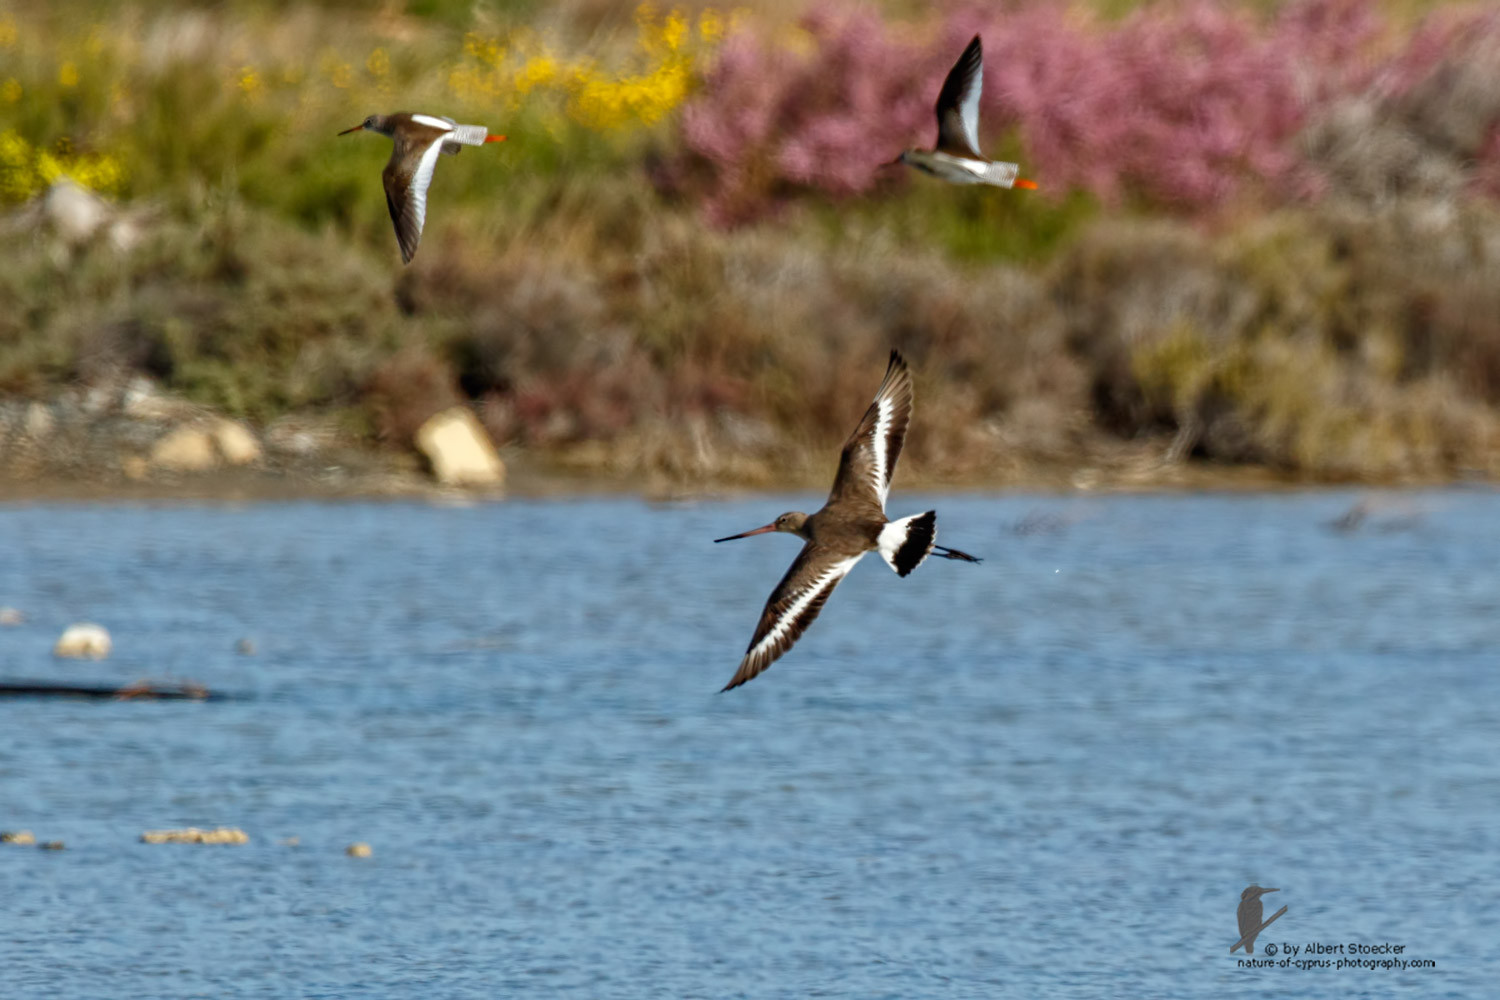 Limosa limosa - Black-tailed Godwit - Uferschnepfe, Cyprus, Zakai Marsh, March 2016